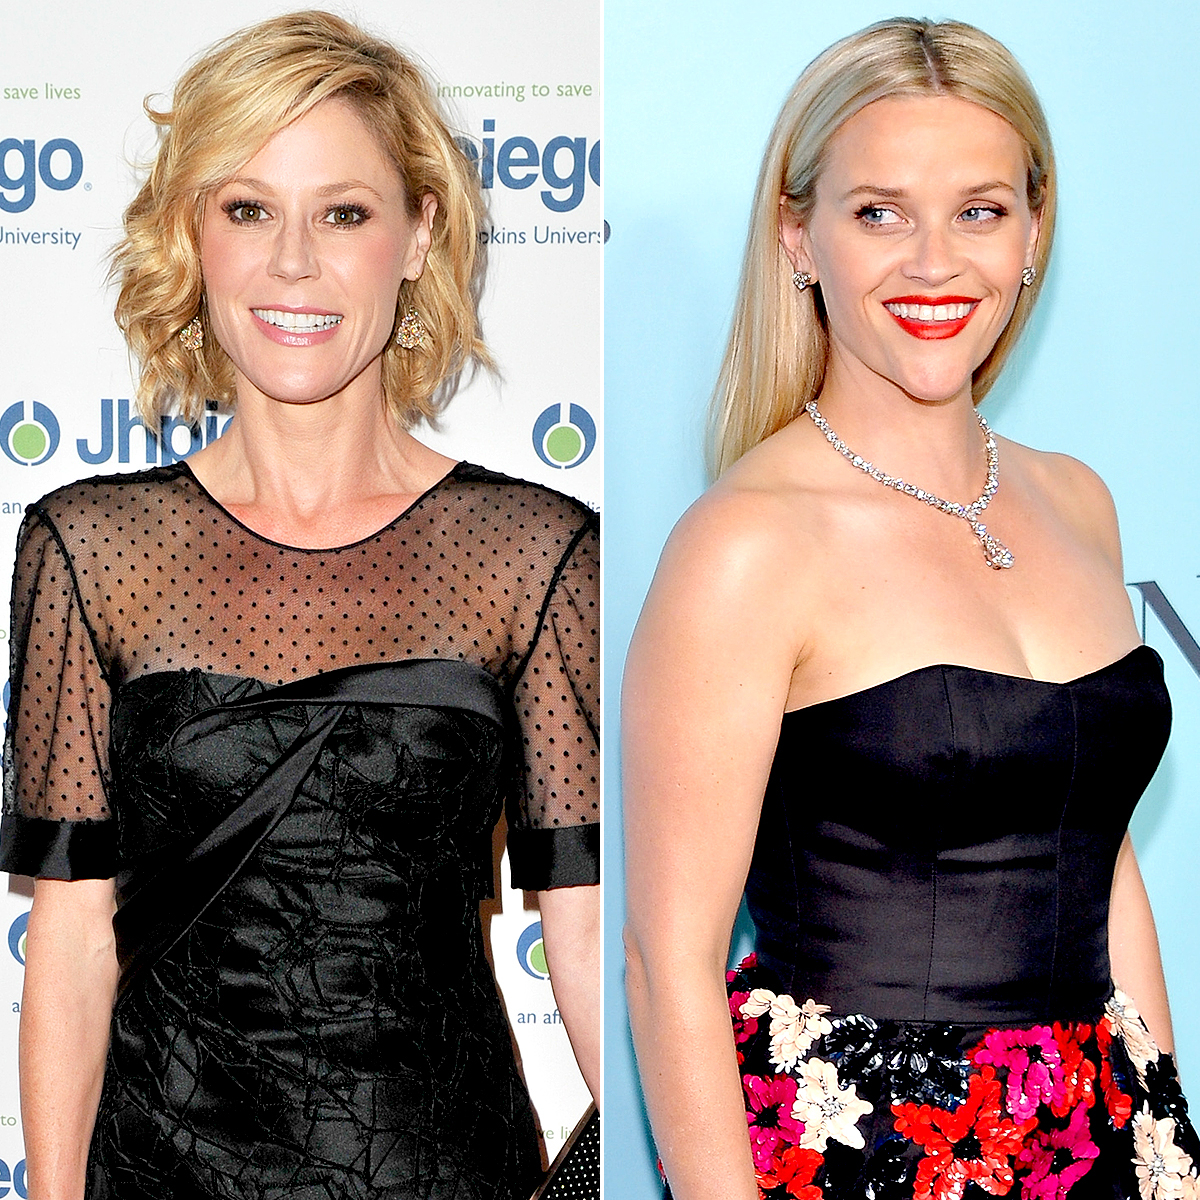 Julie Bowen and Reese Witherspoon